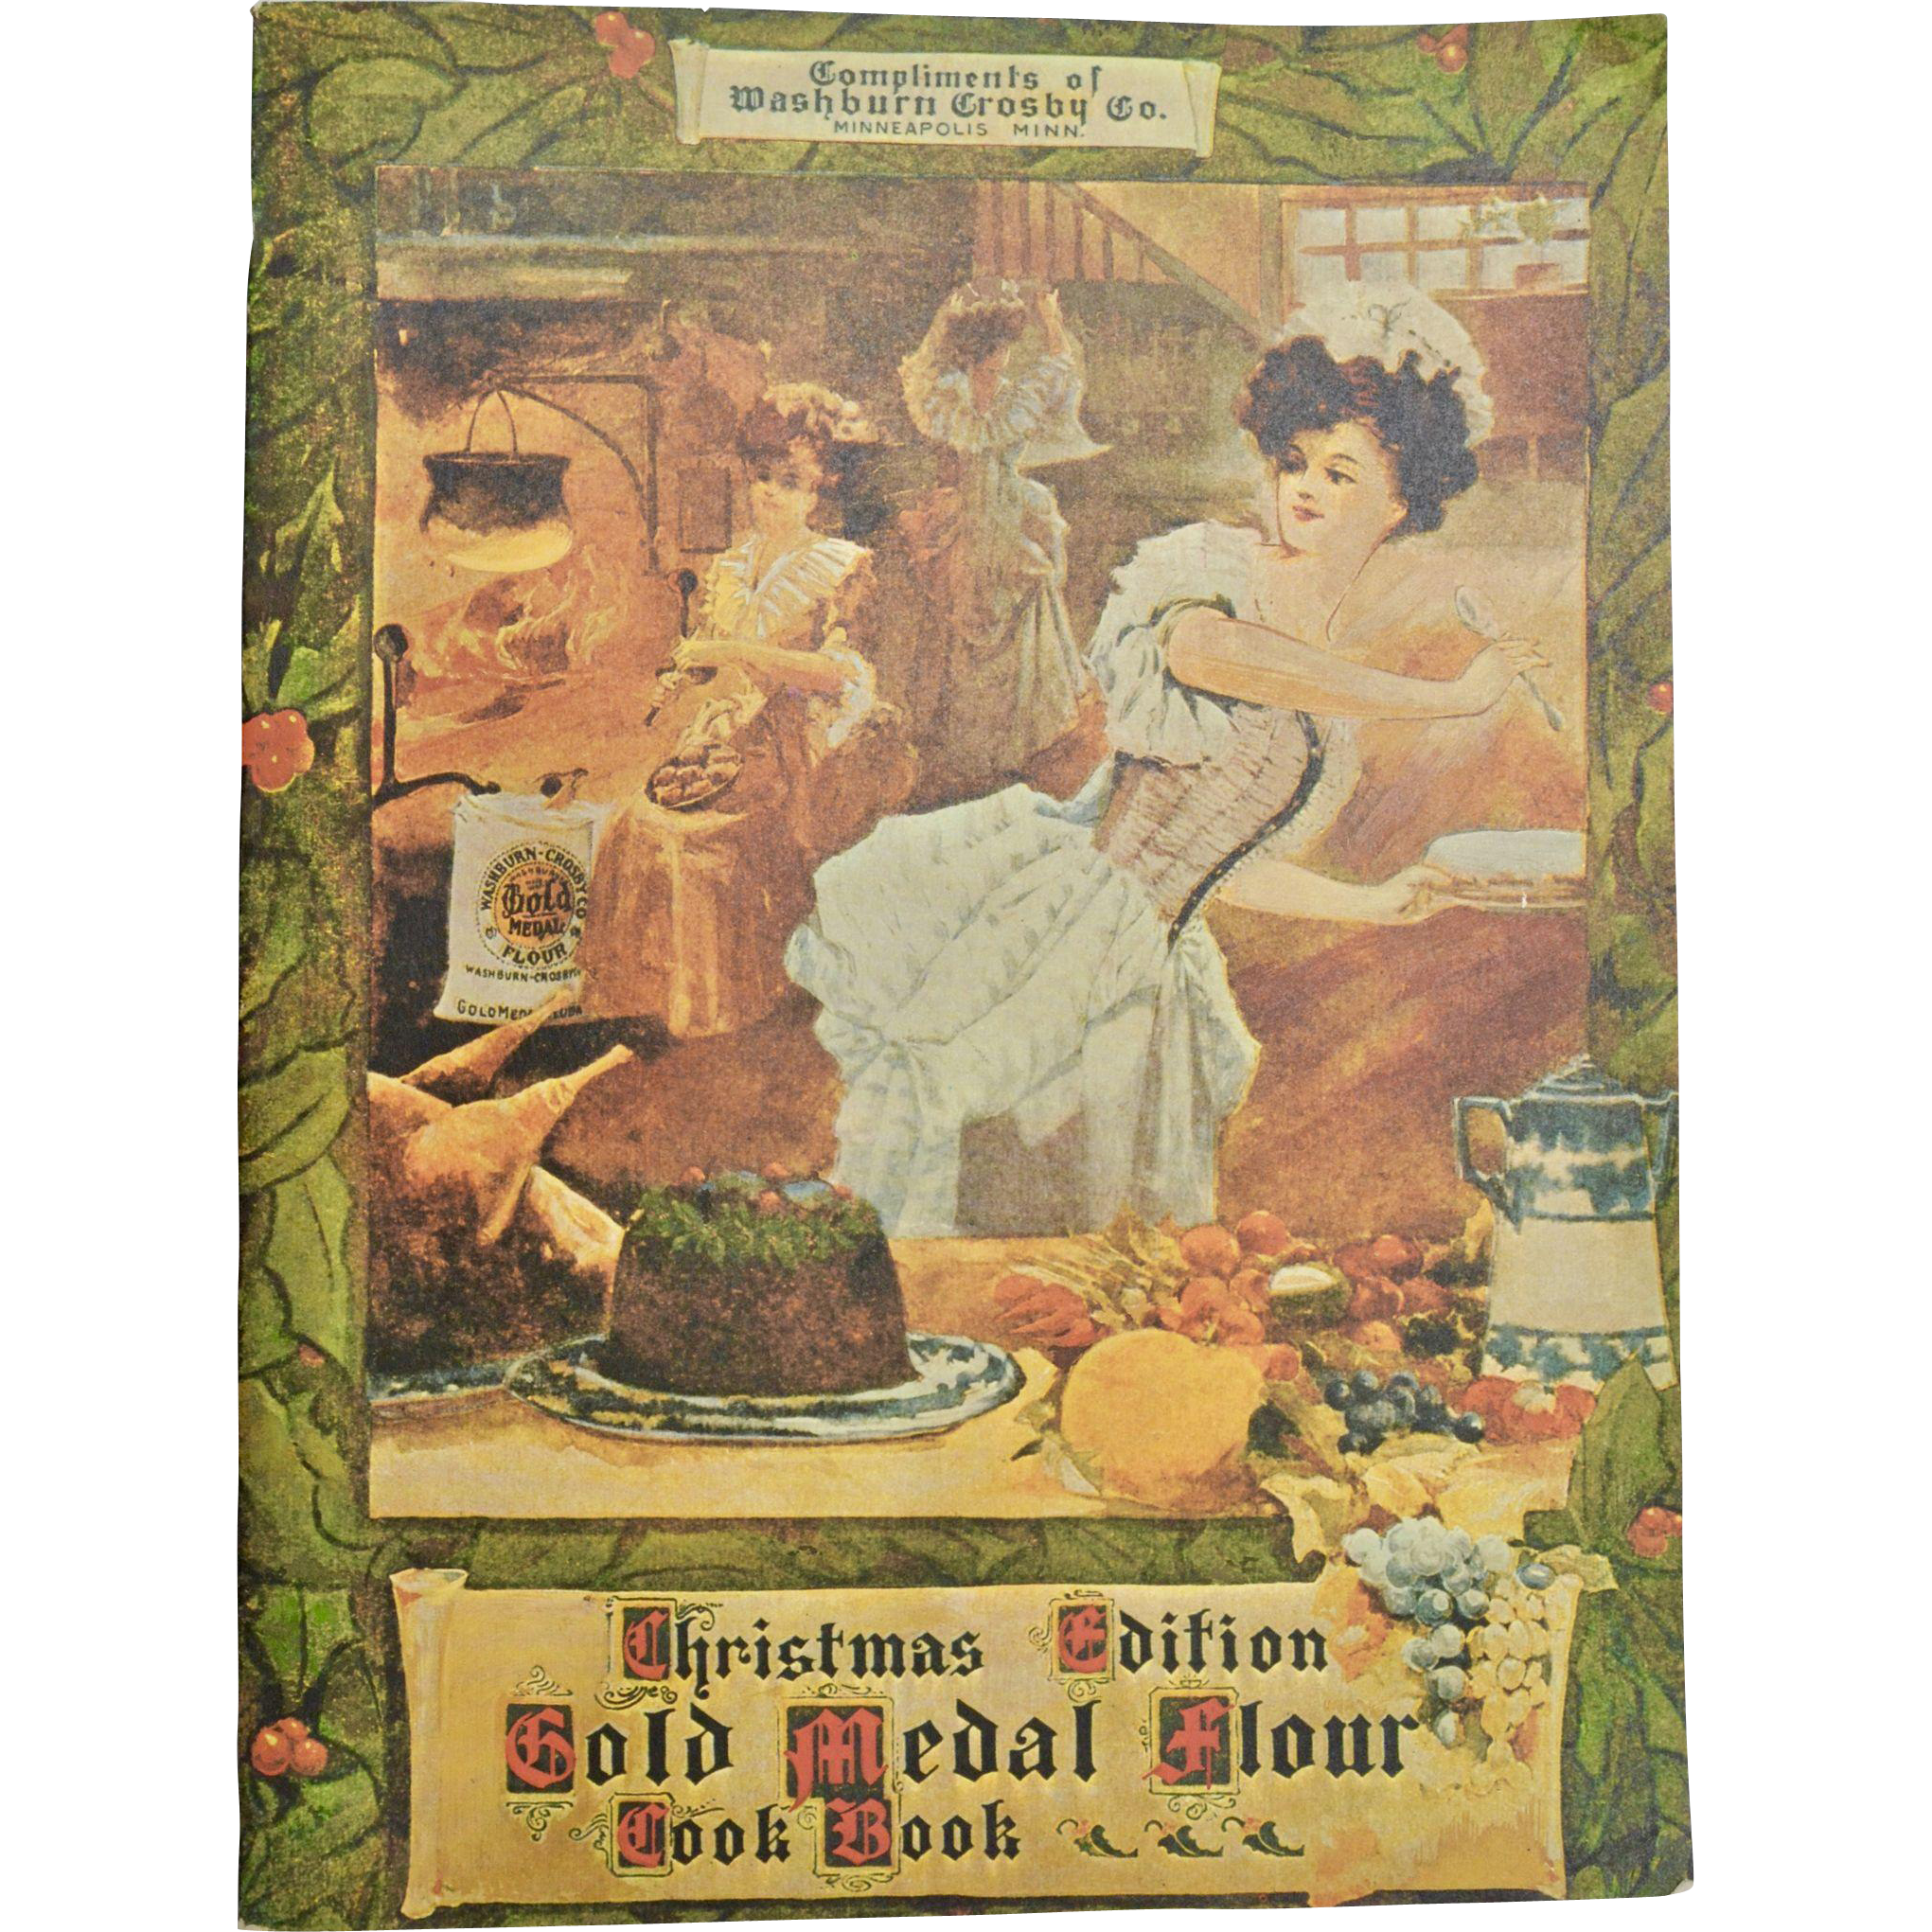 """1904 Reprinted in 1970 """"Christmas Edition Gold Medal Flour Cook Book"""""""